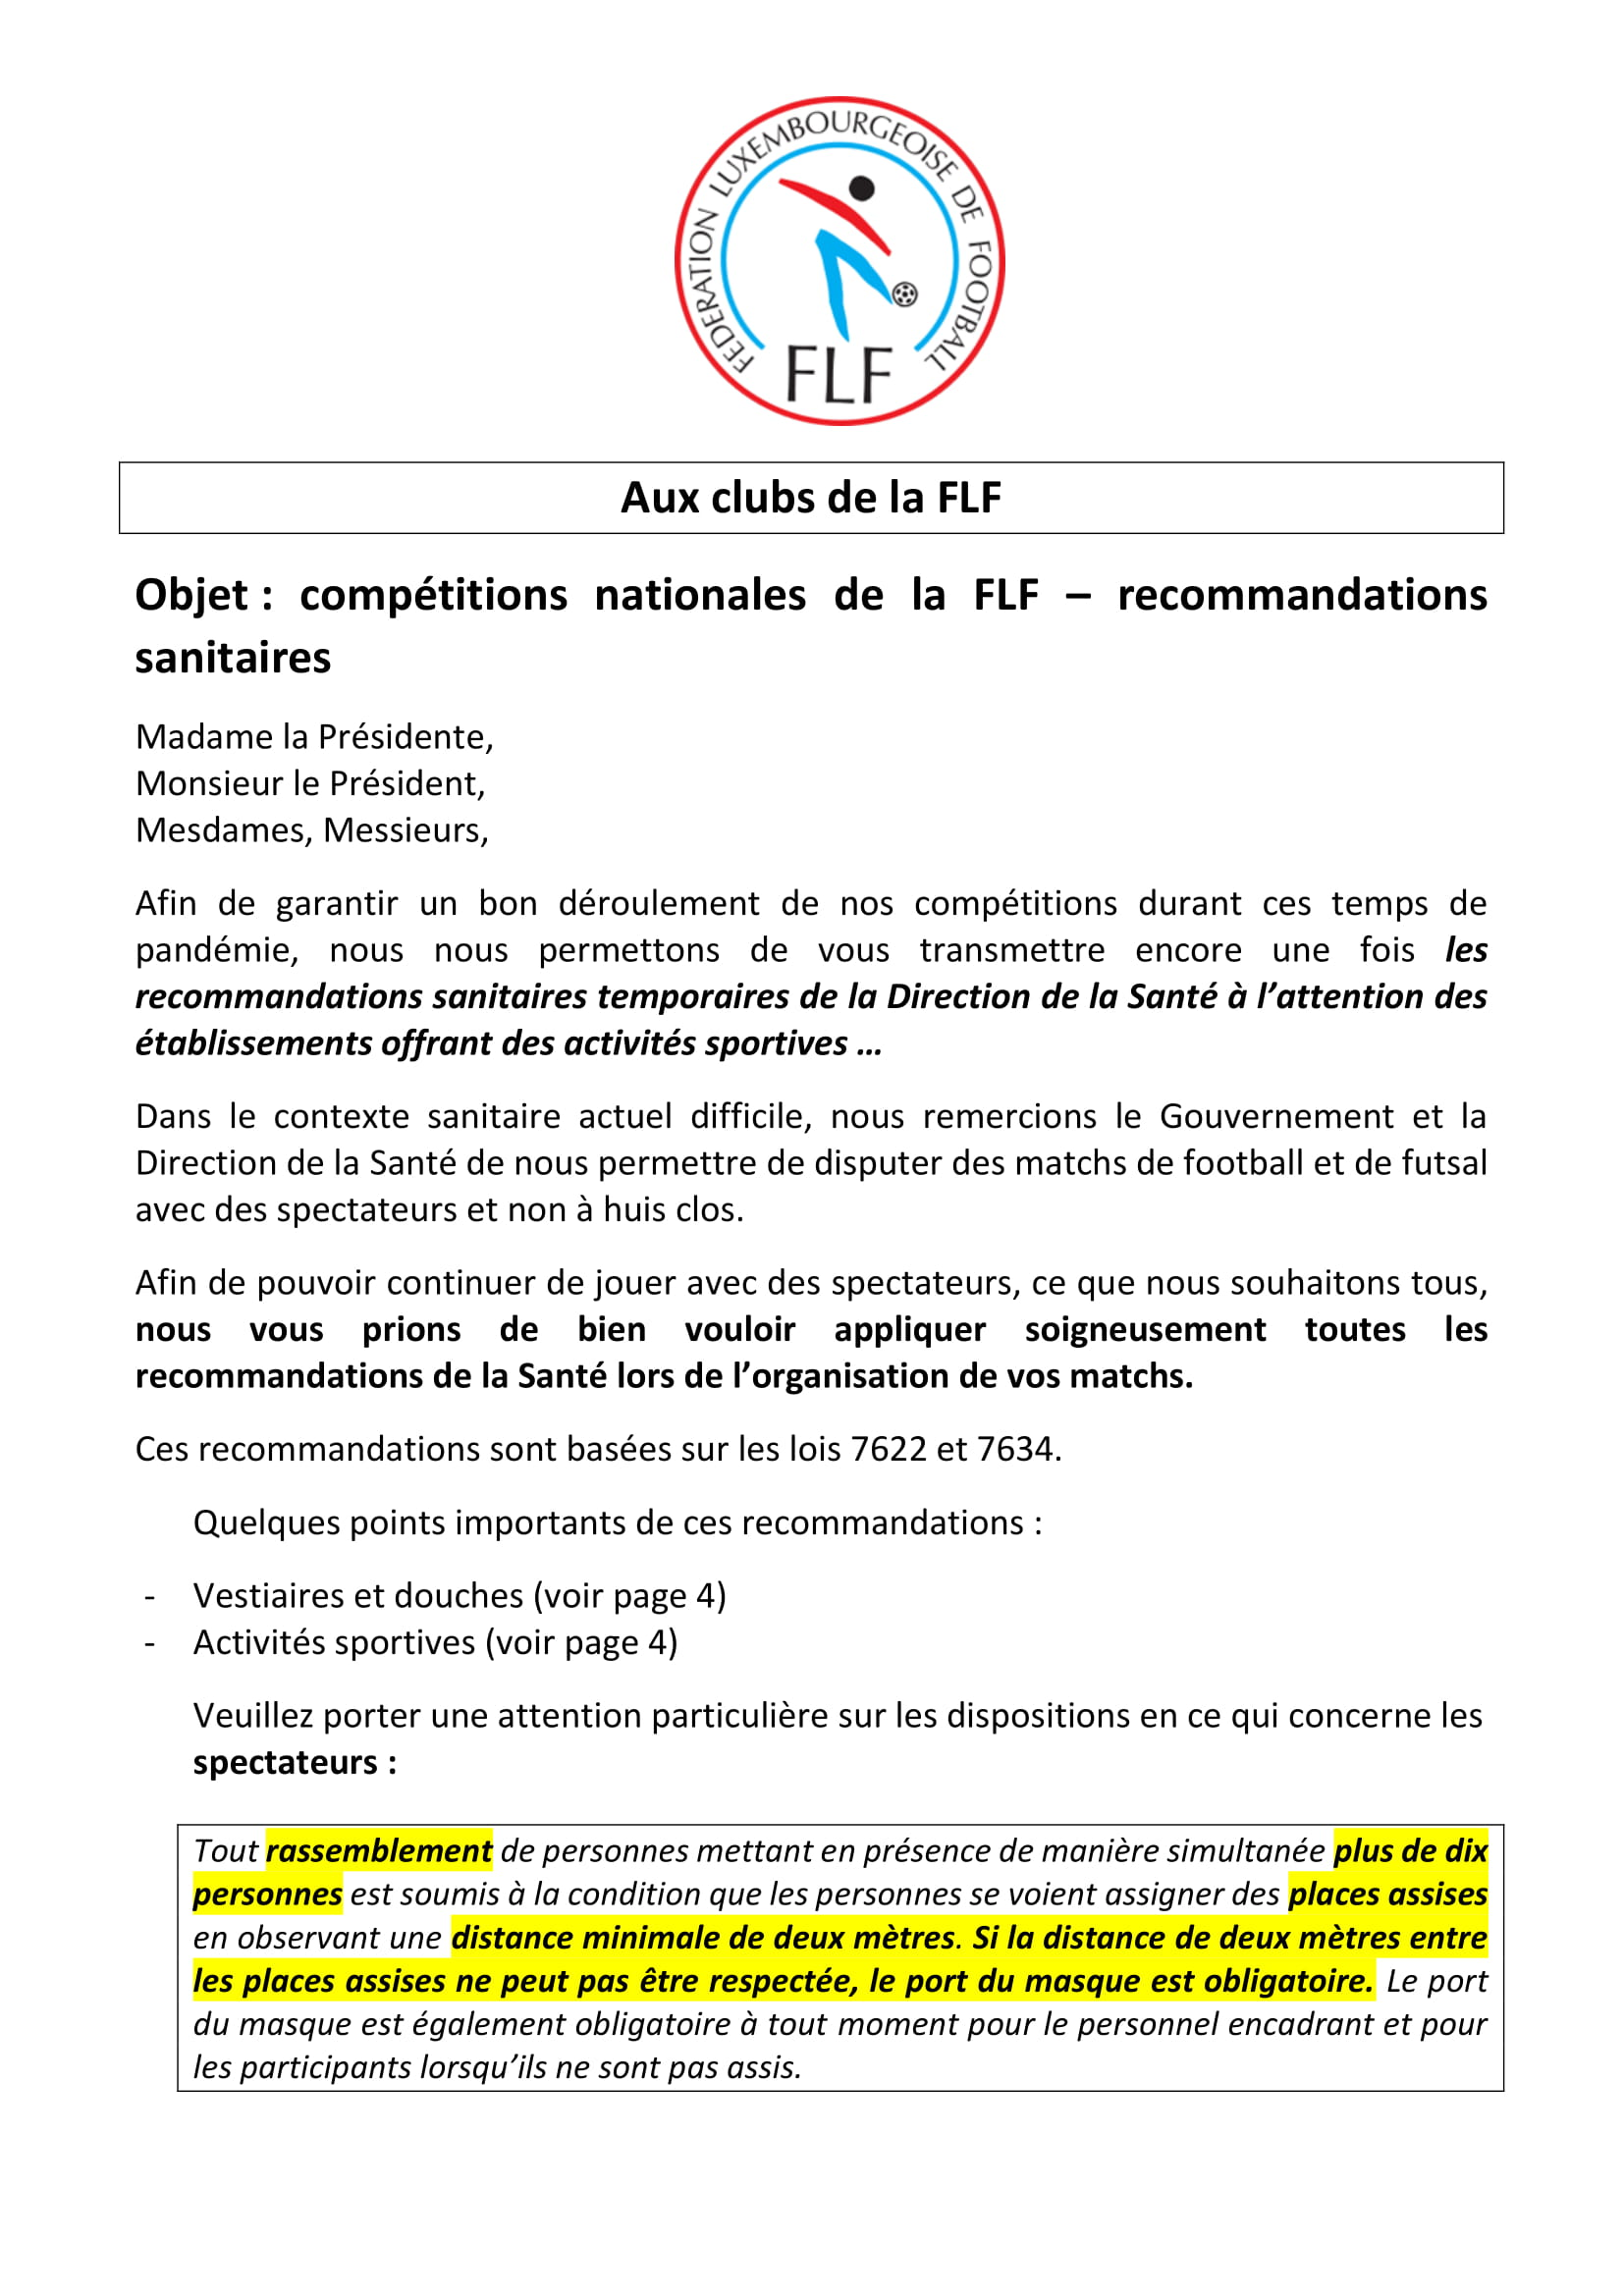 recommandations sanitaires - FLF